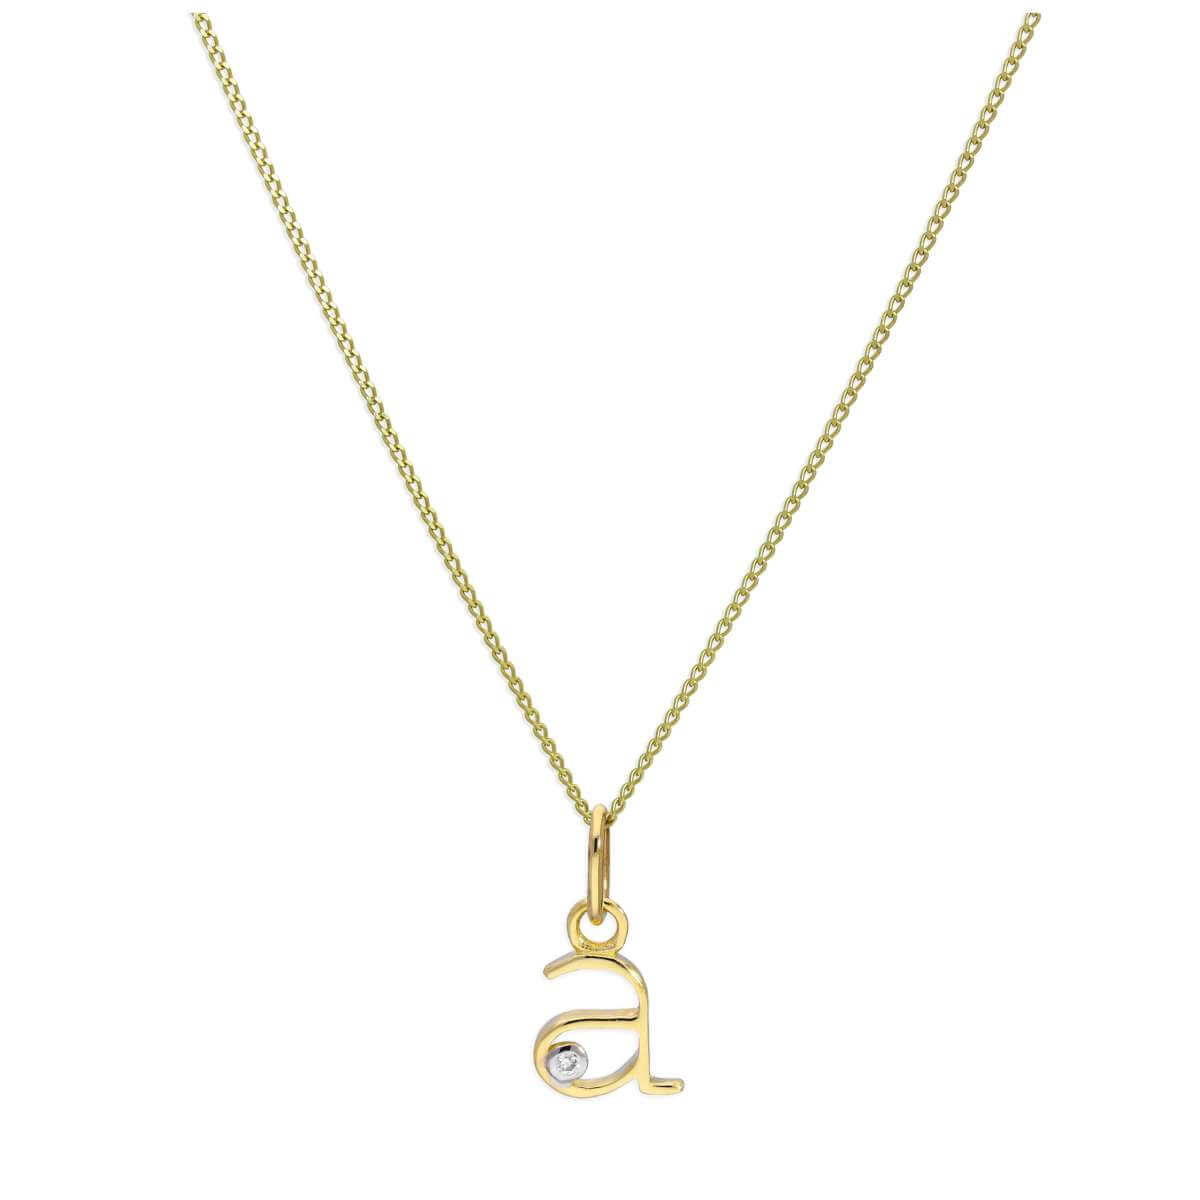 9ct Yellow Gold Single Stone Diamond 0.4 points Letter A Necklace Pendant 16 - 20 Inches